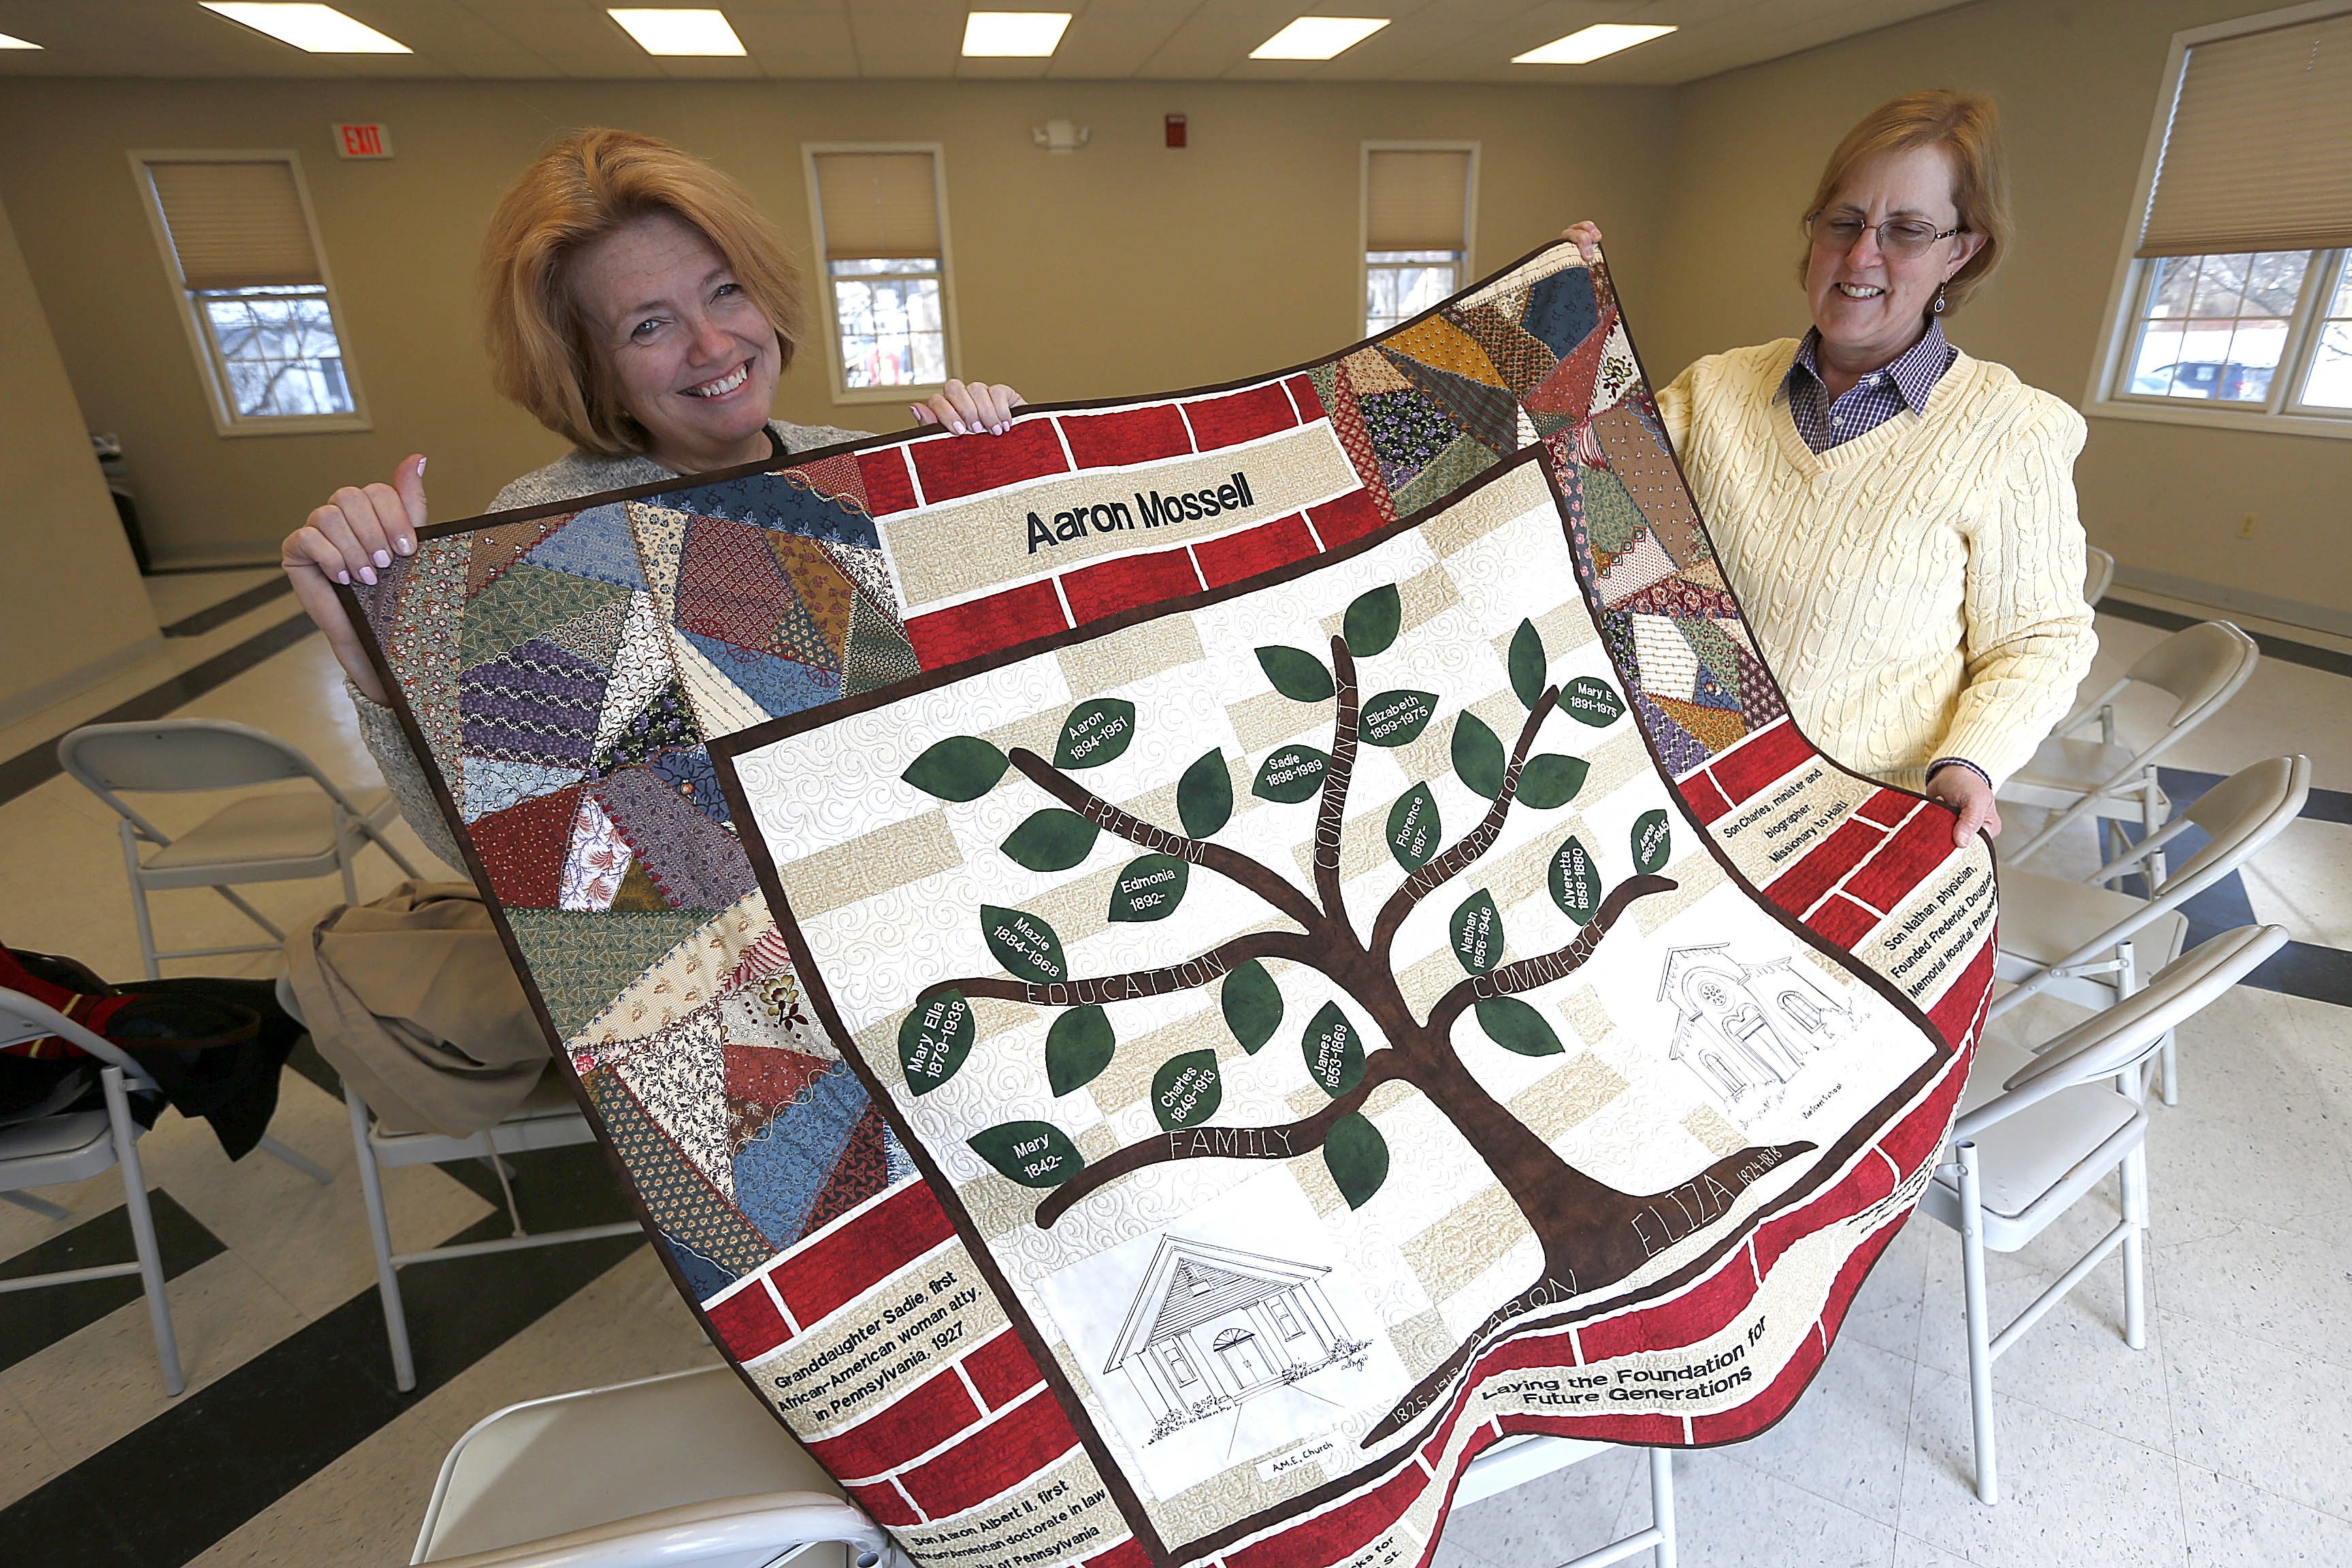 Ellen Martin, left, community coordinator, and Nancy Smith, right, quilt project manager, display a quilt honoring Aaron Mossell, the African-American businessman who forced the desegregation of Lockport public schools in the 1870s.